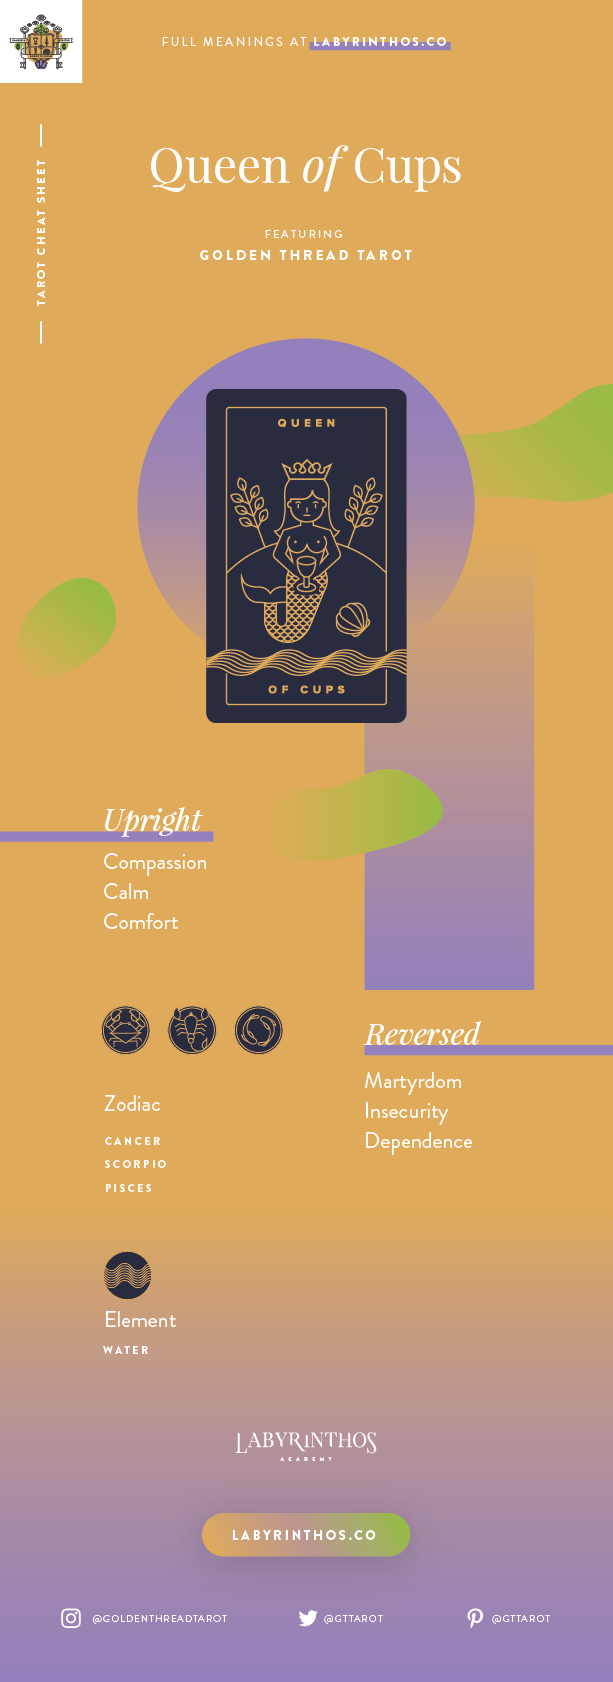 Queen of Cups Meaning - Tarot Card Meanings Cheat Sheet. Art from Golden Thread Tarot.